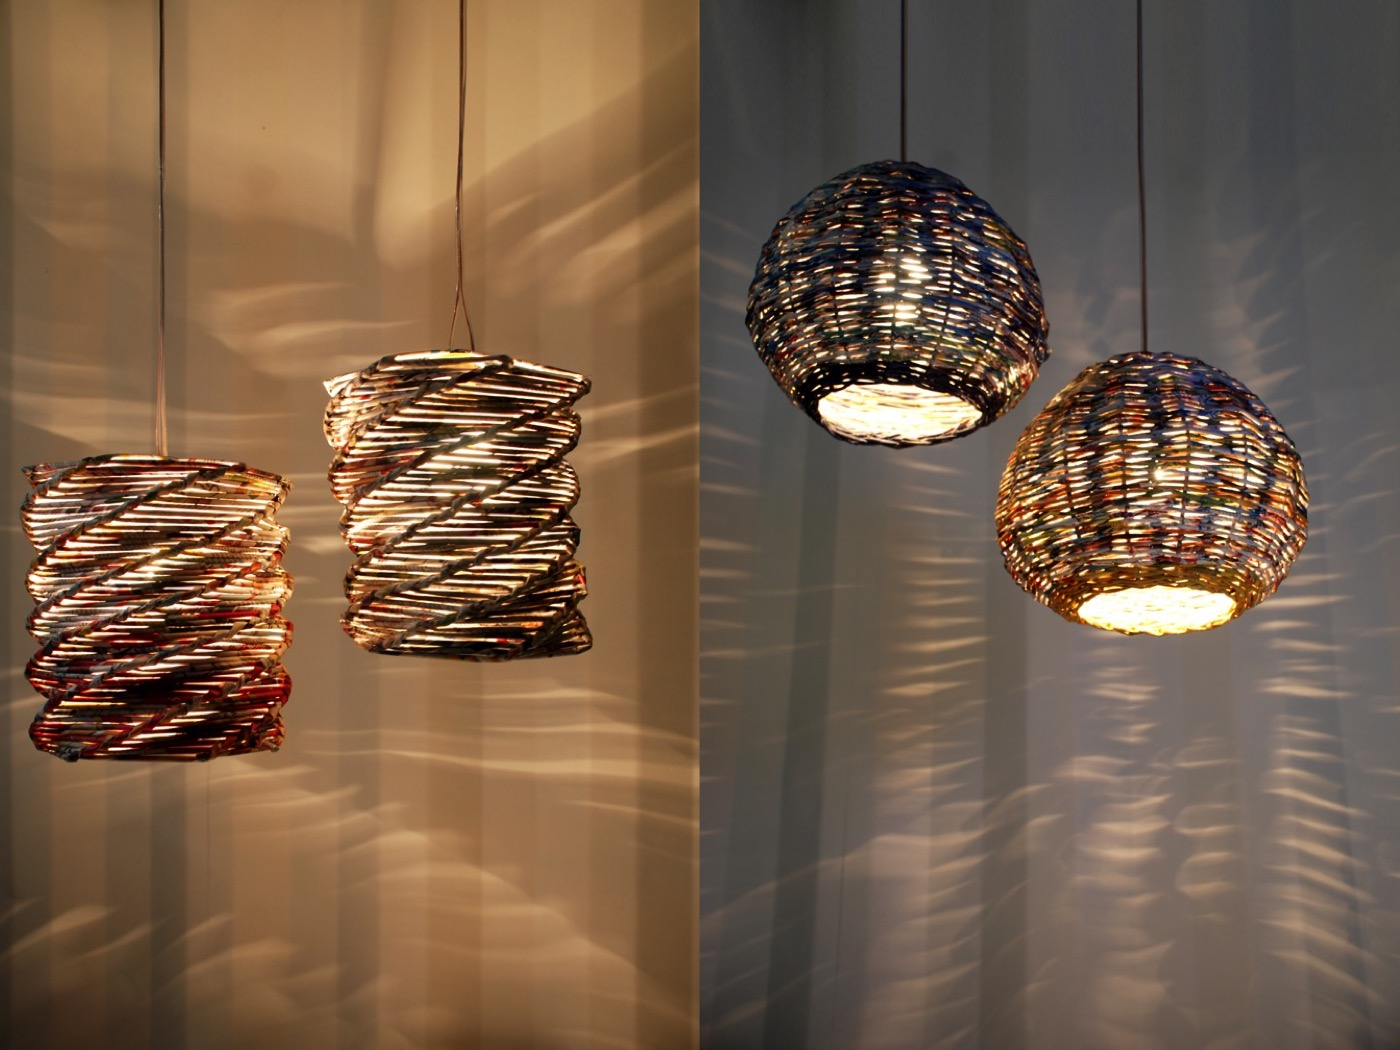 PaperScape Lamps